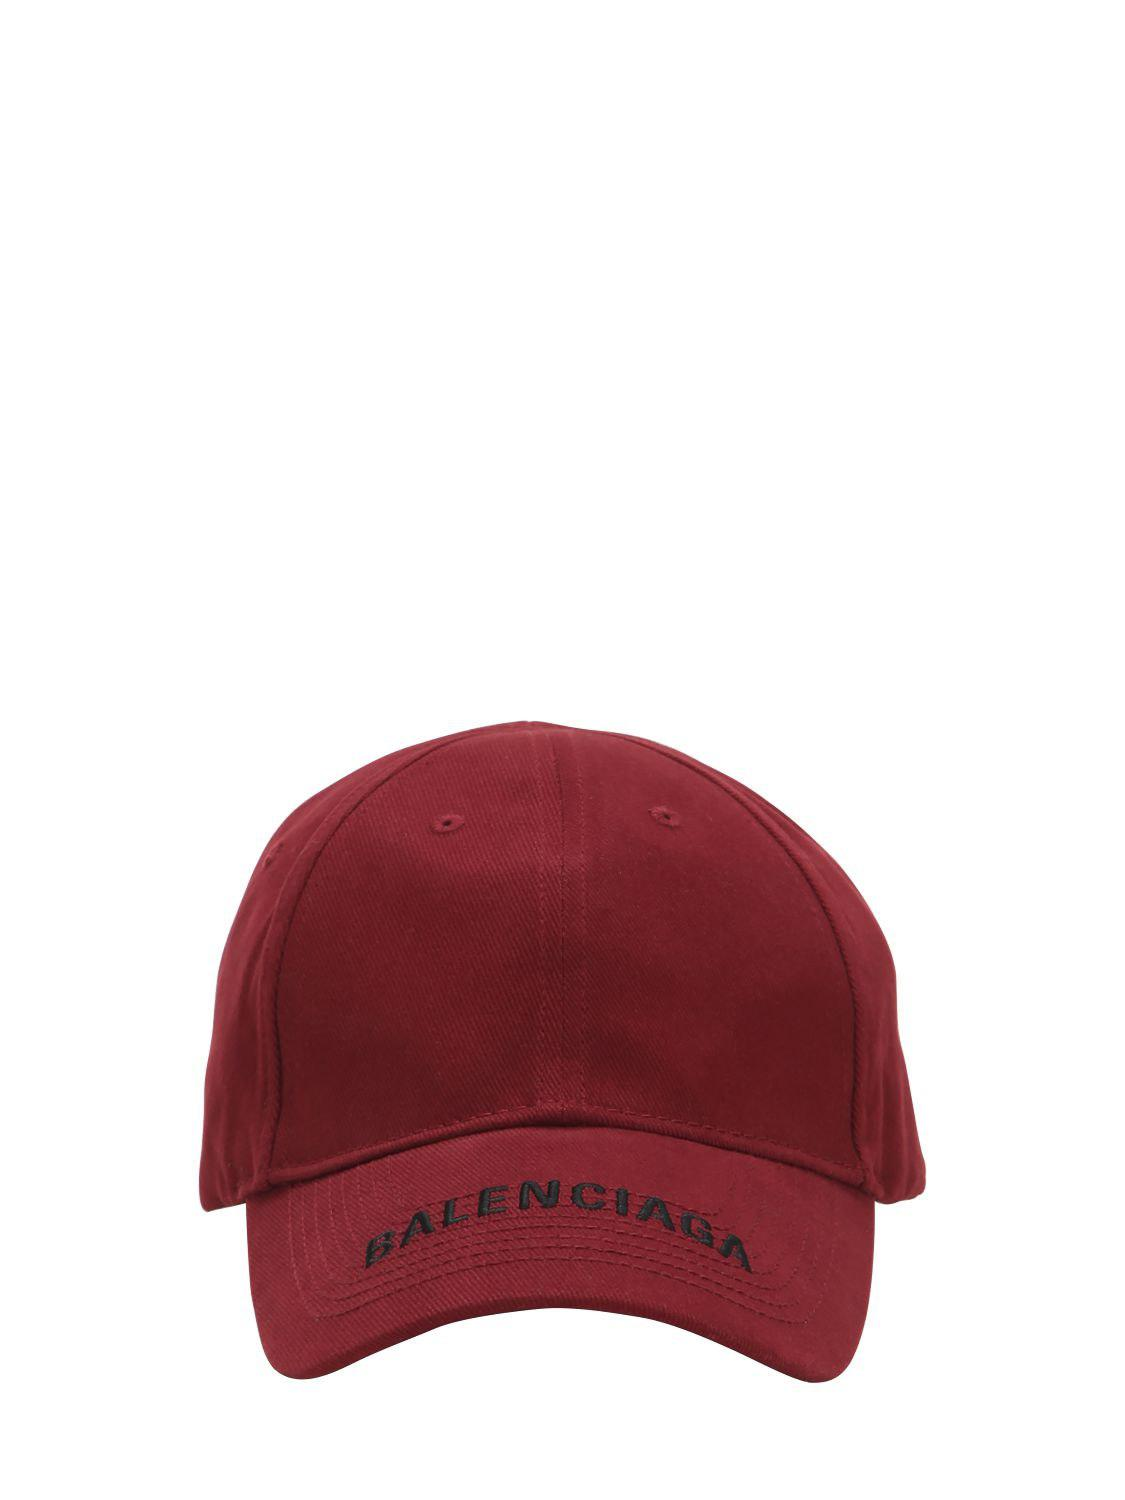 c36ebc3c Balenciaga Logo Embroidered Gabardine Hat in Red for Men - Lyst